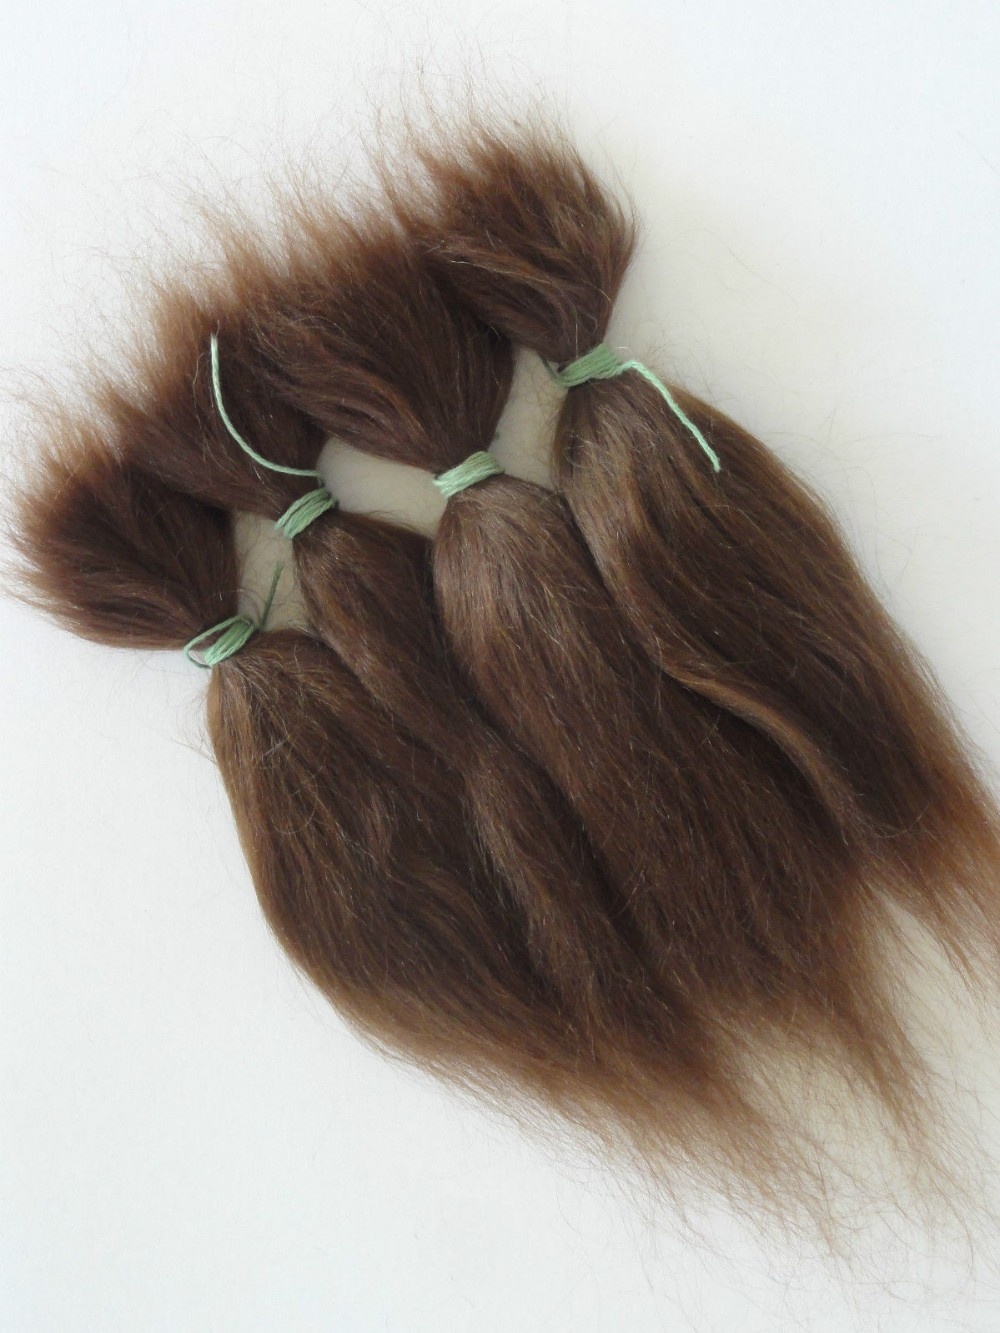 13 g Long Hair Gold Brown100% Pure Mohair For DIY Reborn Baby Dolls Reborn Baby Doll Hair Wigs Dolls Accessories 15g brown and blonde 100% pure natural fashion mohair doll hair 6 inches for reborn baby dolls angora goat wig accessories